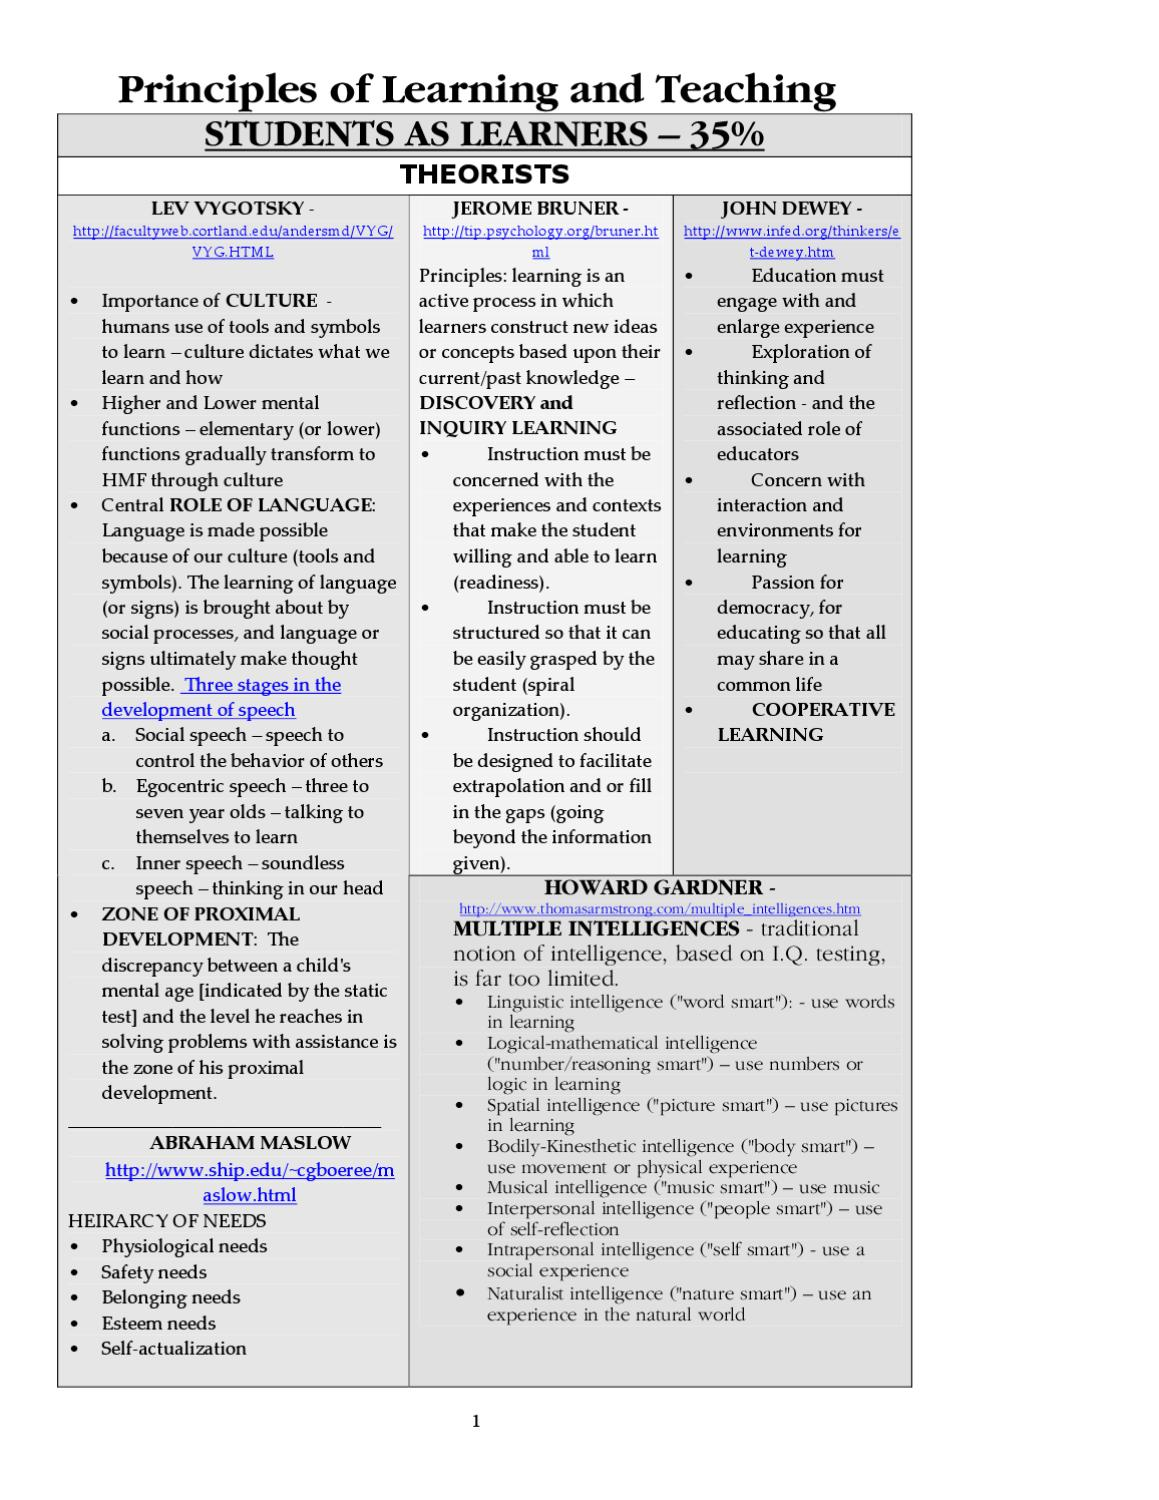 principles of learning and teaching praxis study guide